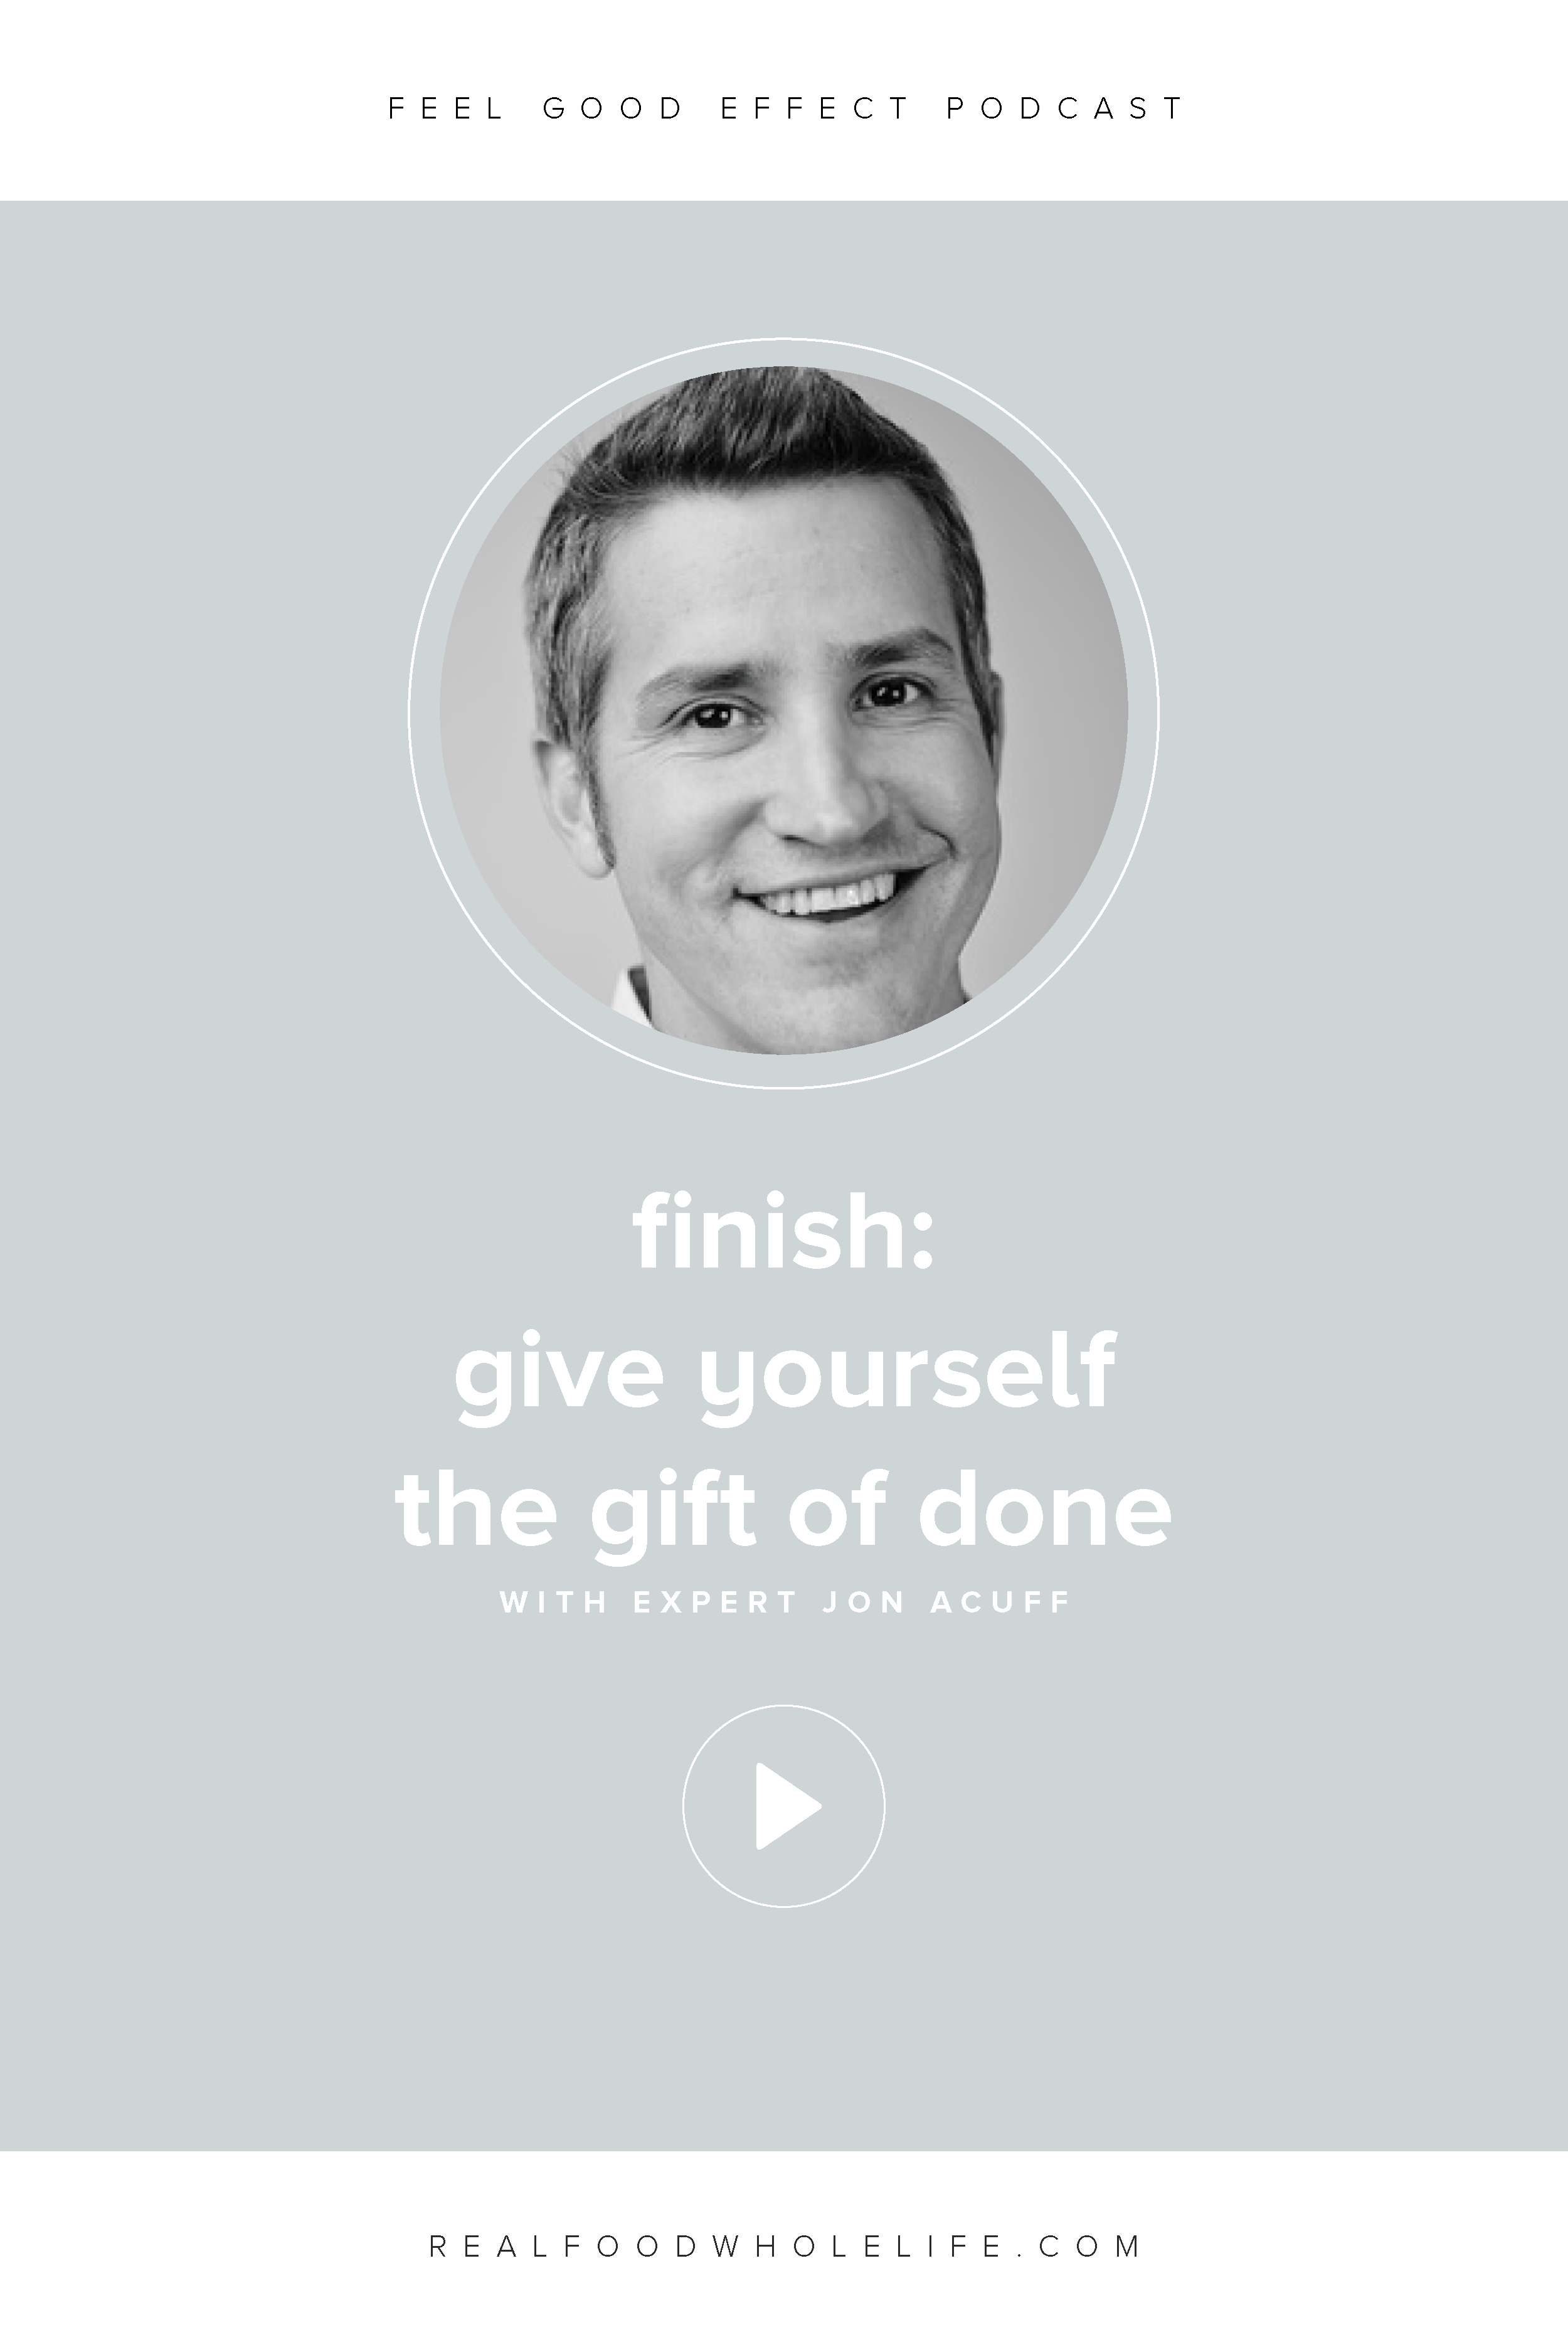 Jon Acuff on the Feel Good Effect Podcast: Finish Give Yourself the Gift of Done